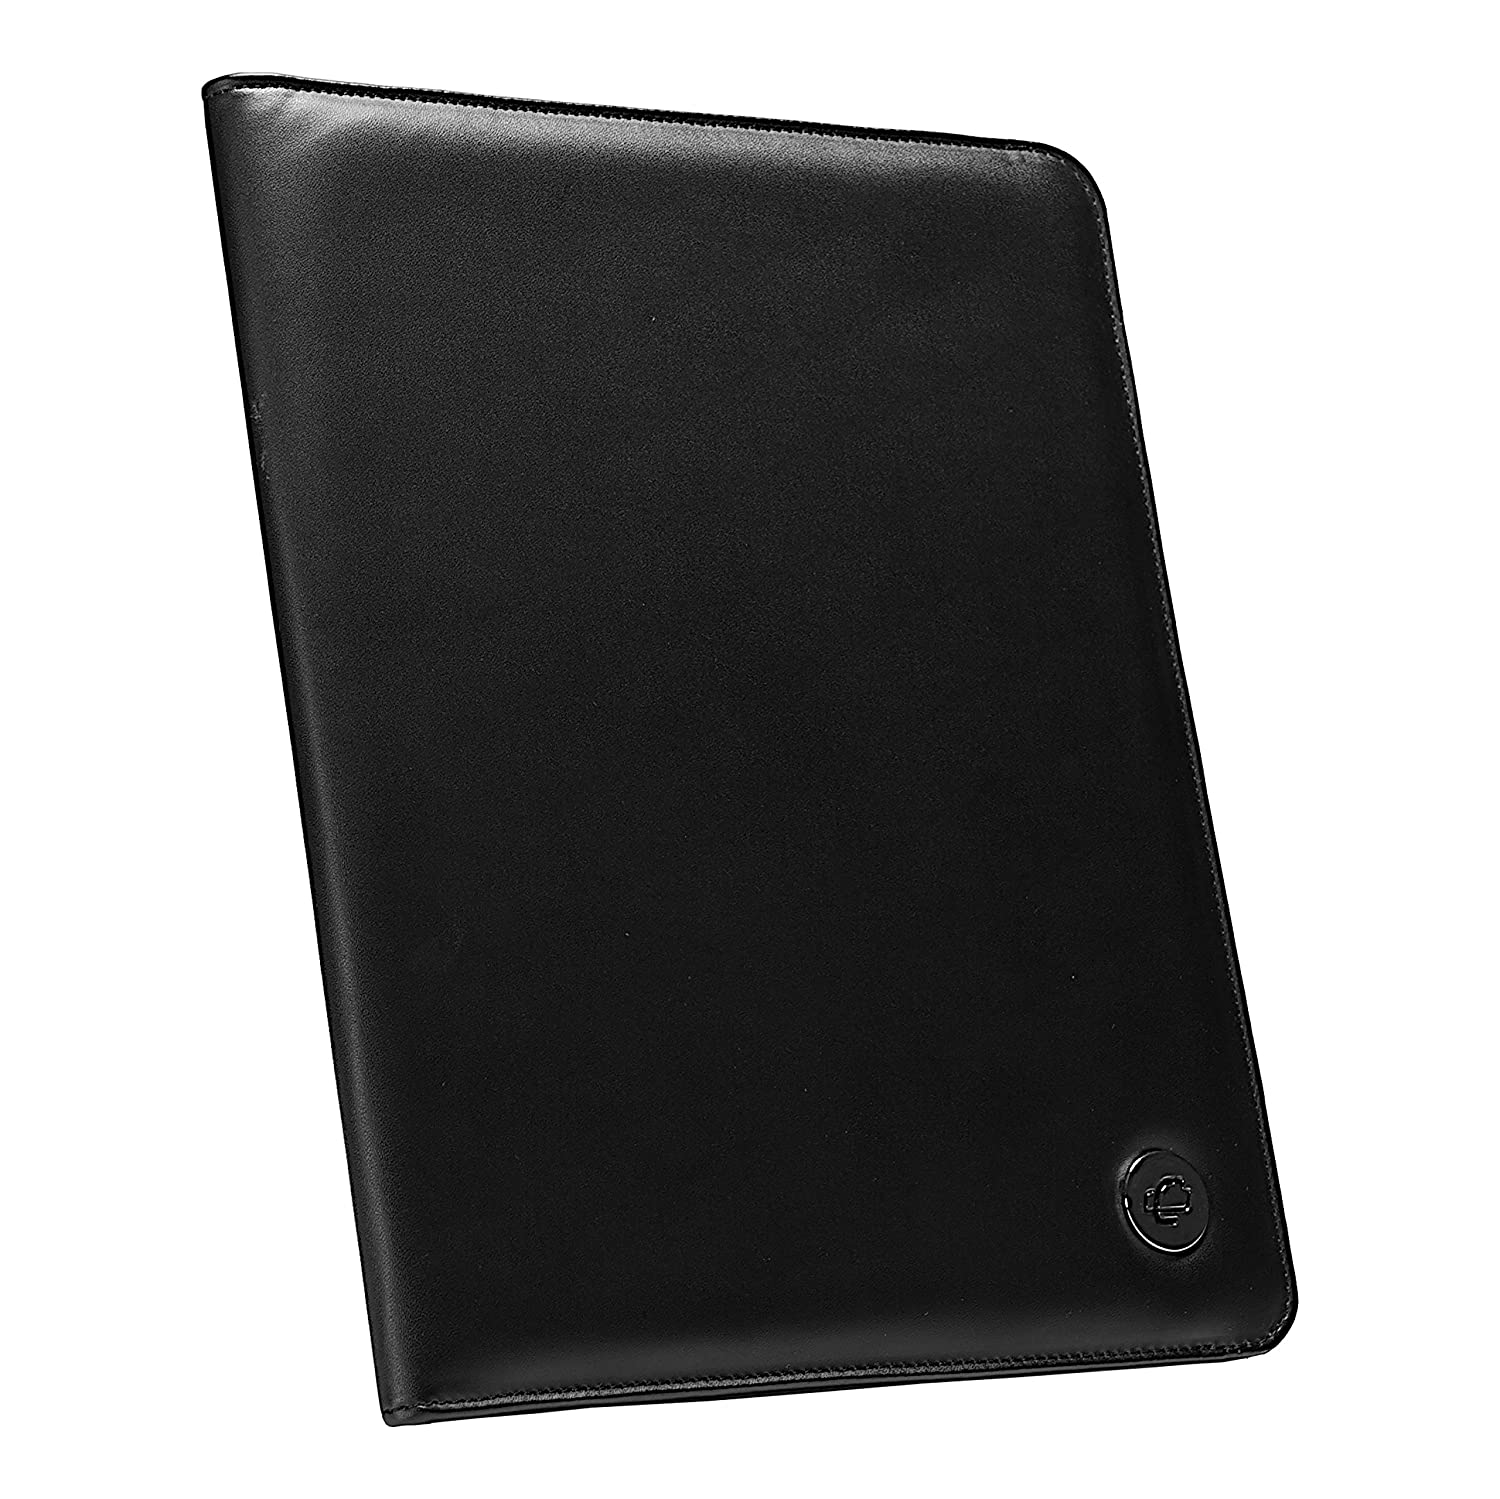 Case-it PAD-30 Executive Leatherette Padfolio with Letter Size Writing Pad, Black Case It